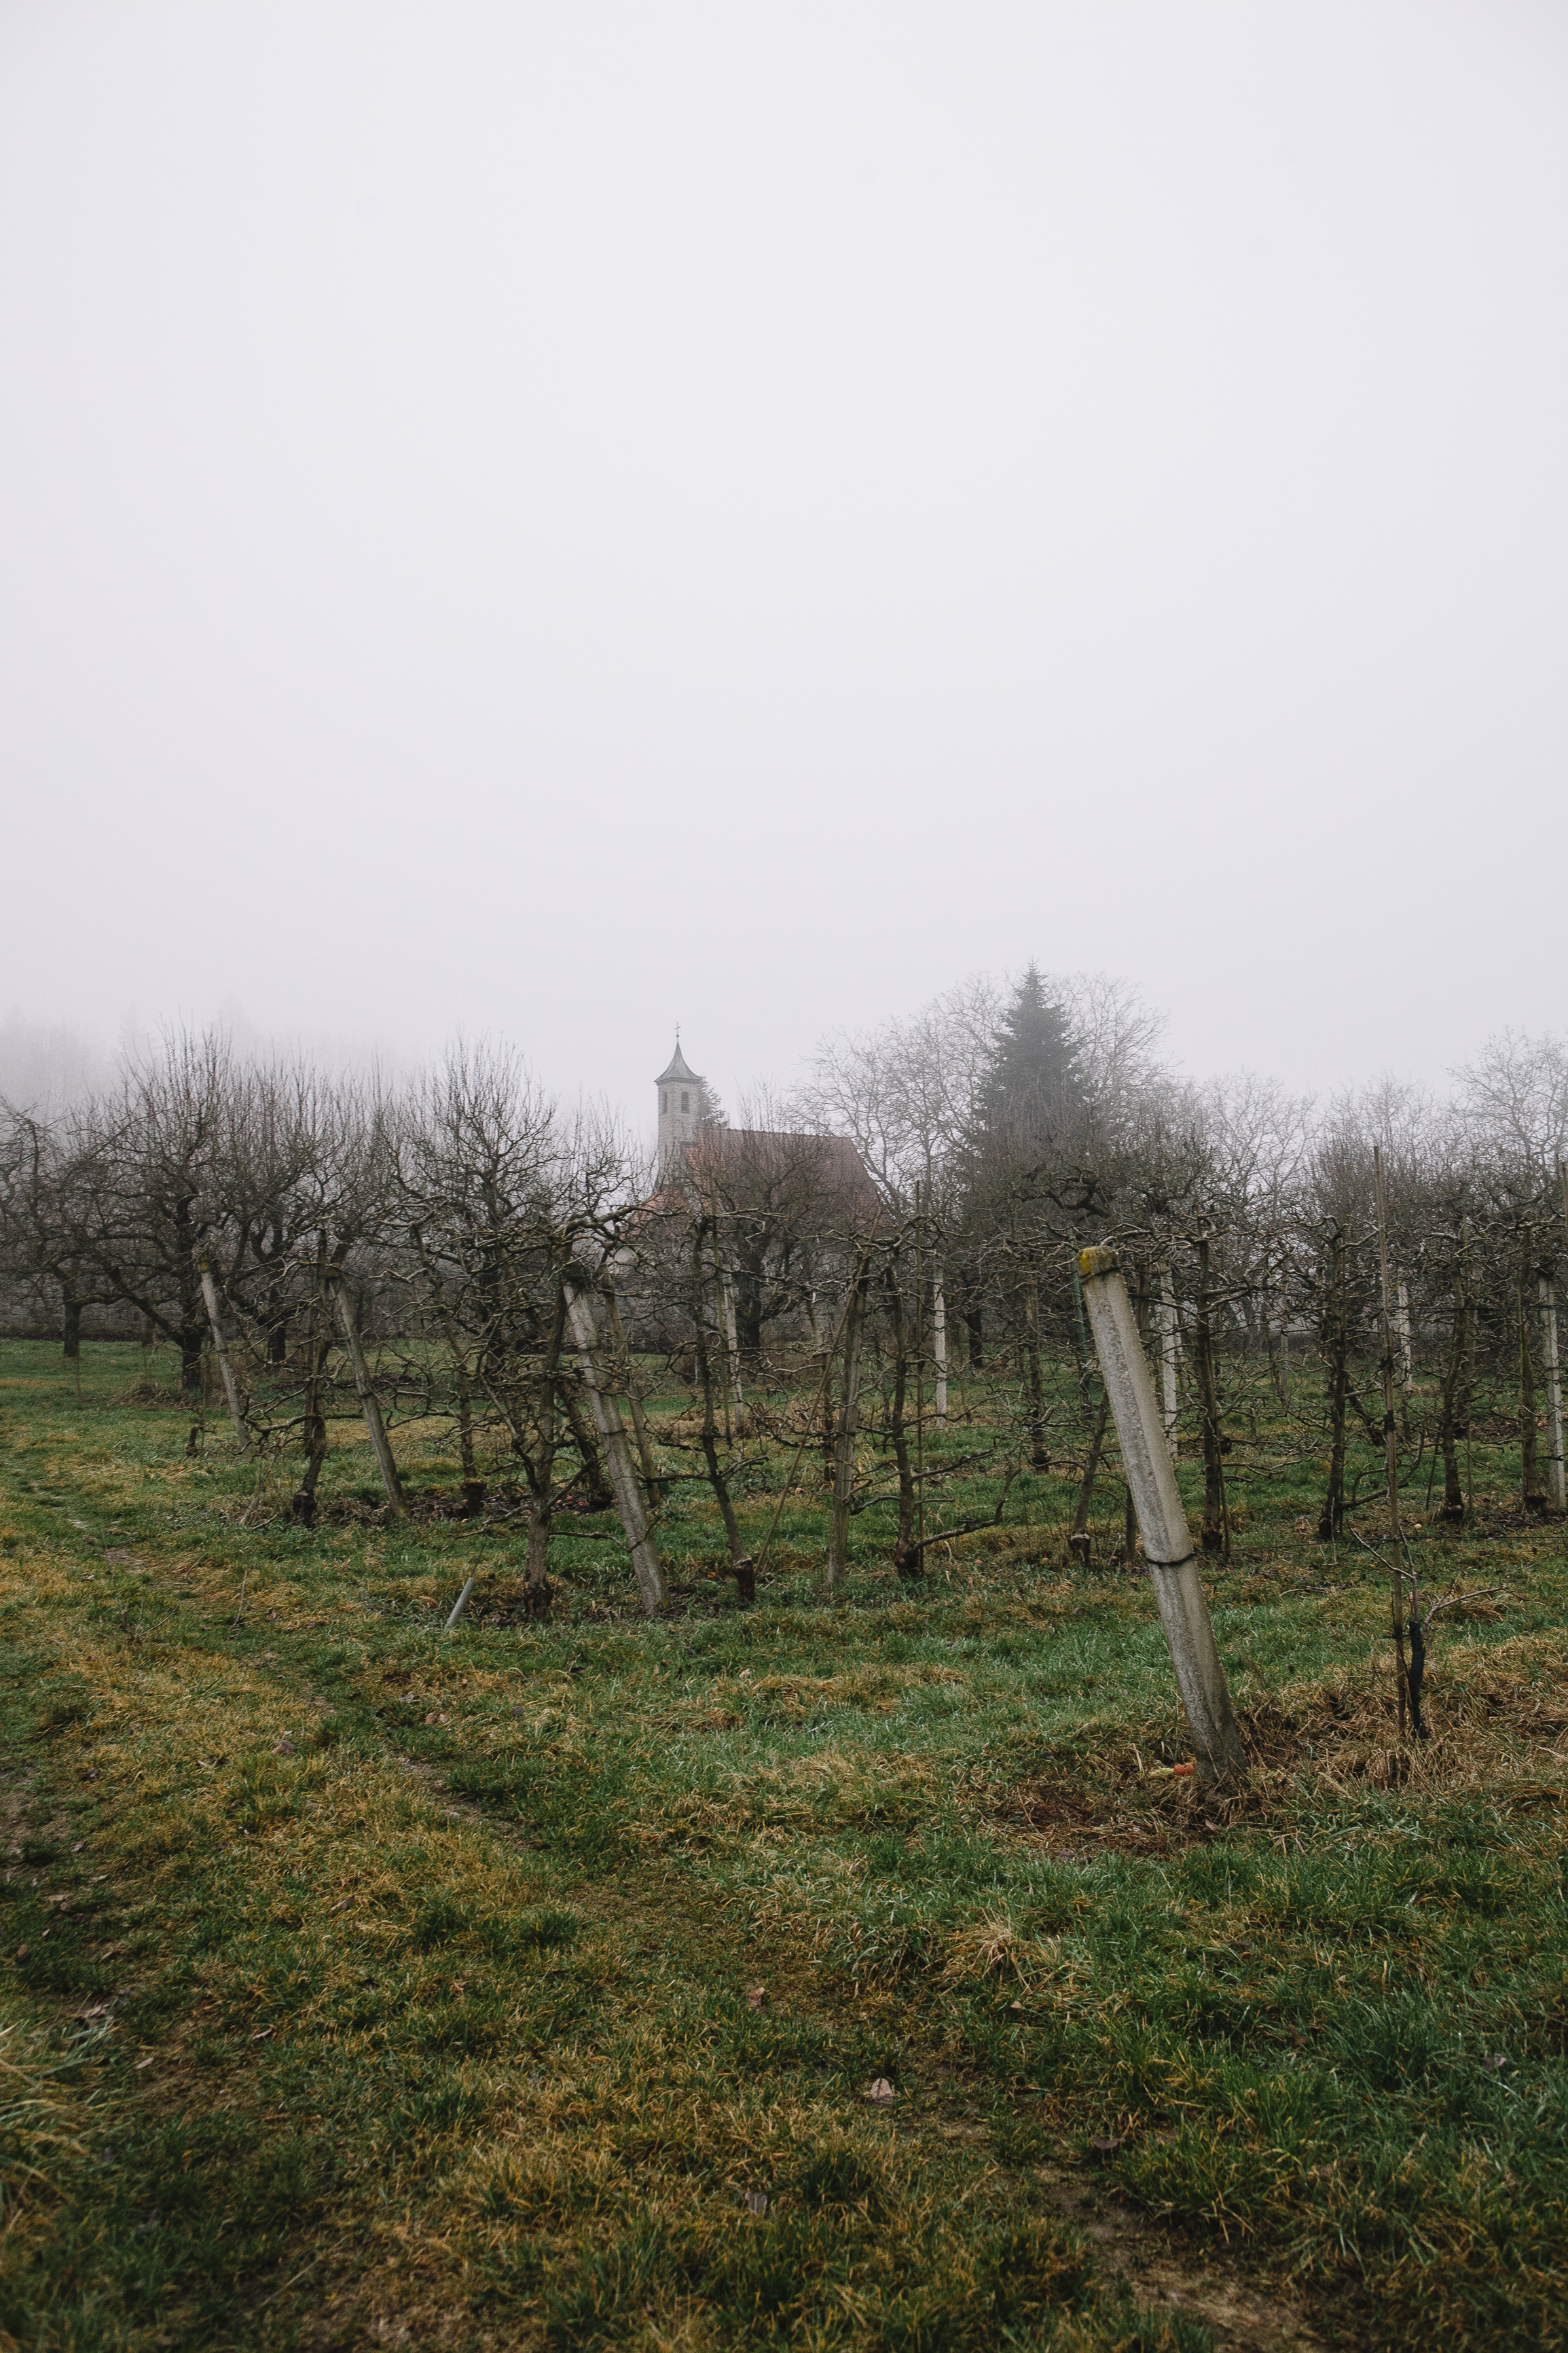 Weinreben neben dem Haus Pax/ Wineyard next to House Pax